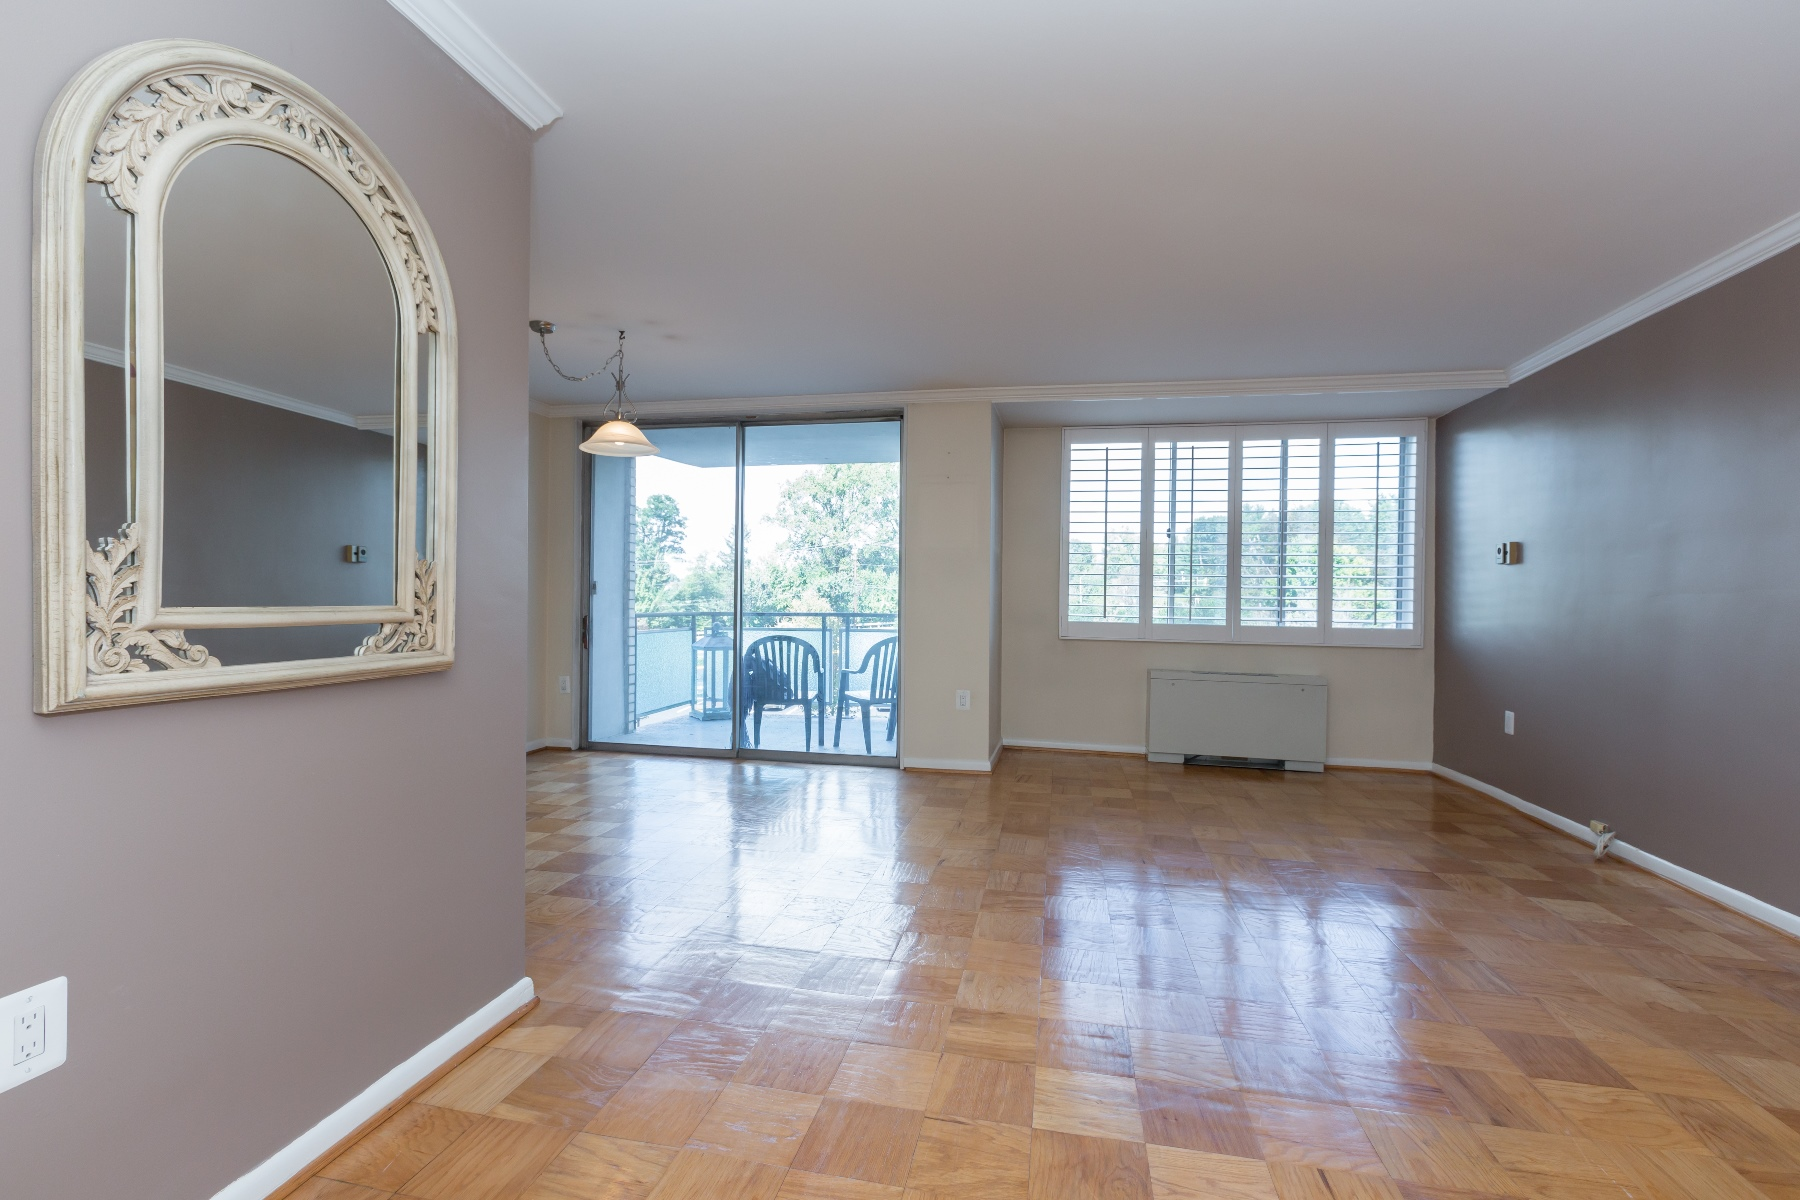 Additional photo for property listing at 10500 Rockville Pike 527, Rockville  Rockville, メリーランド 20852 アメリカ合衆国